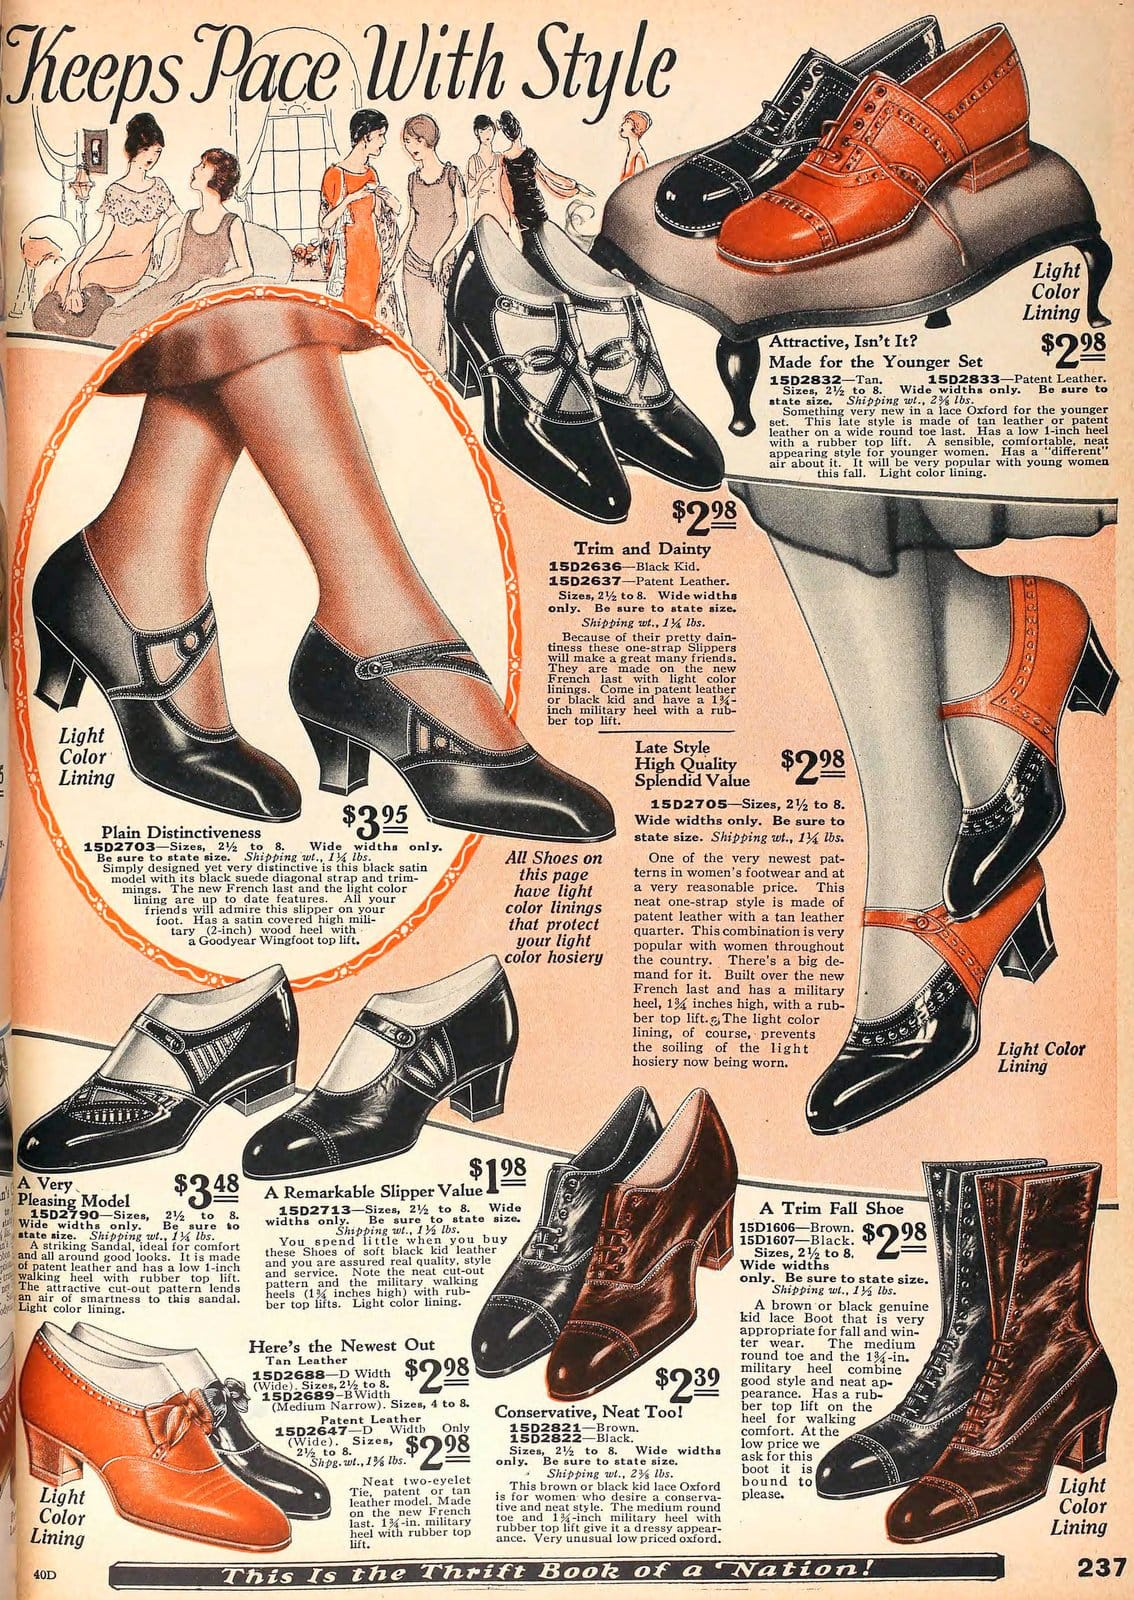 Vintage 1920s shoes for women from 1925 (3)